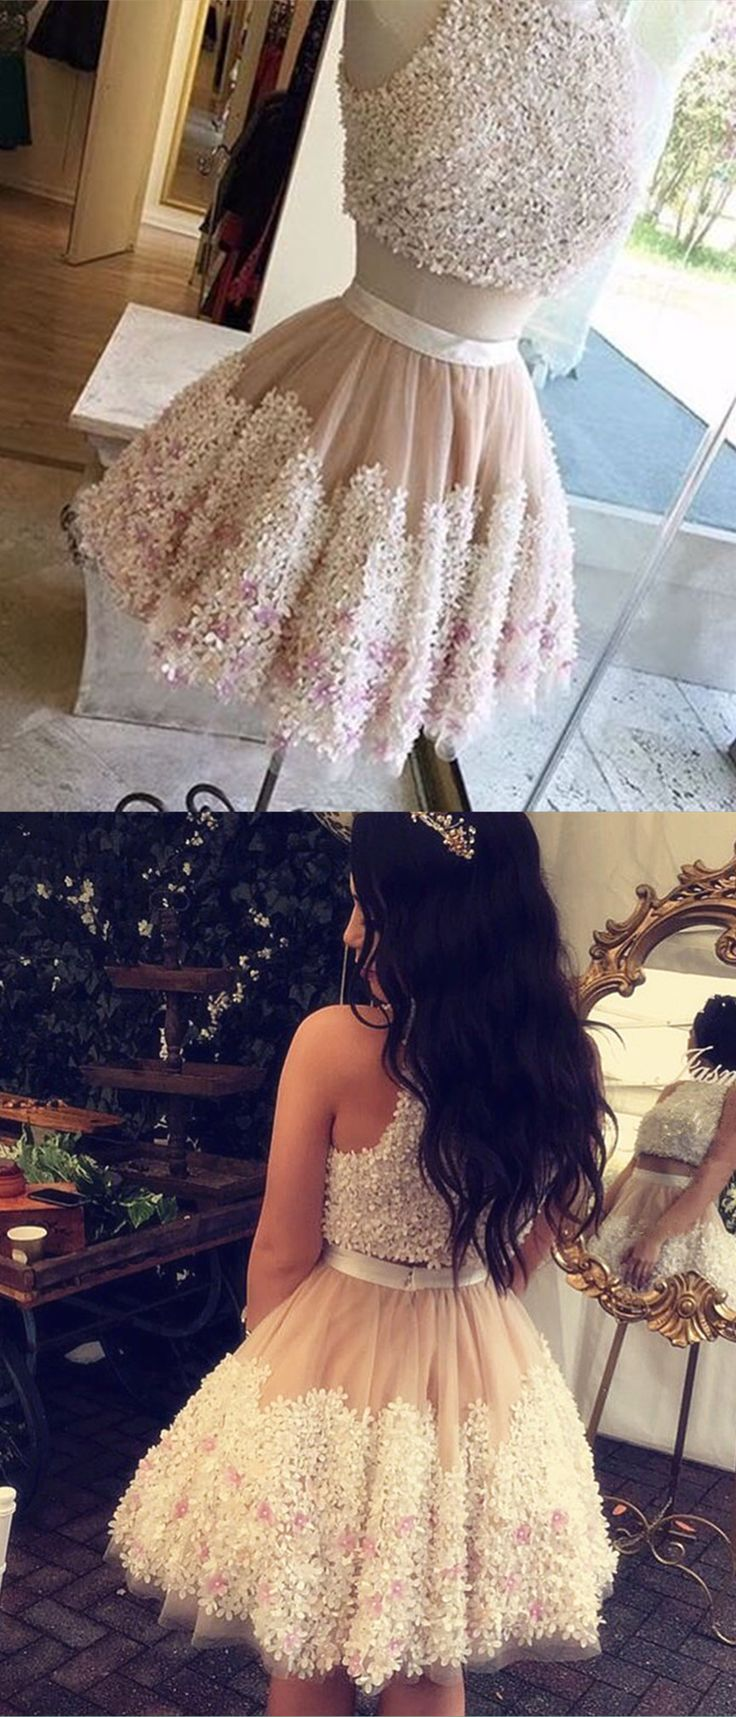 Two Pieces Homecoming Dresses,Pretty Party Dress,Charming Homecoming Dress,Graduation Dress,Homecoming Dress,Short Prom Dress